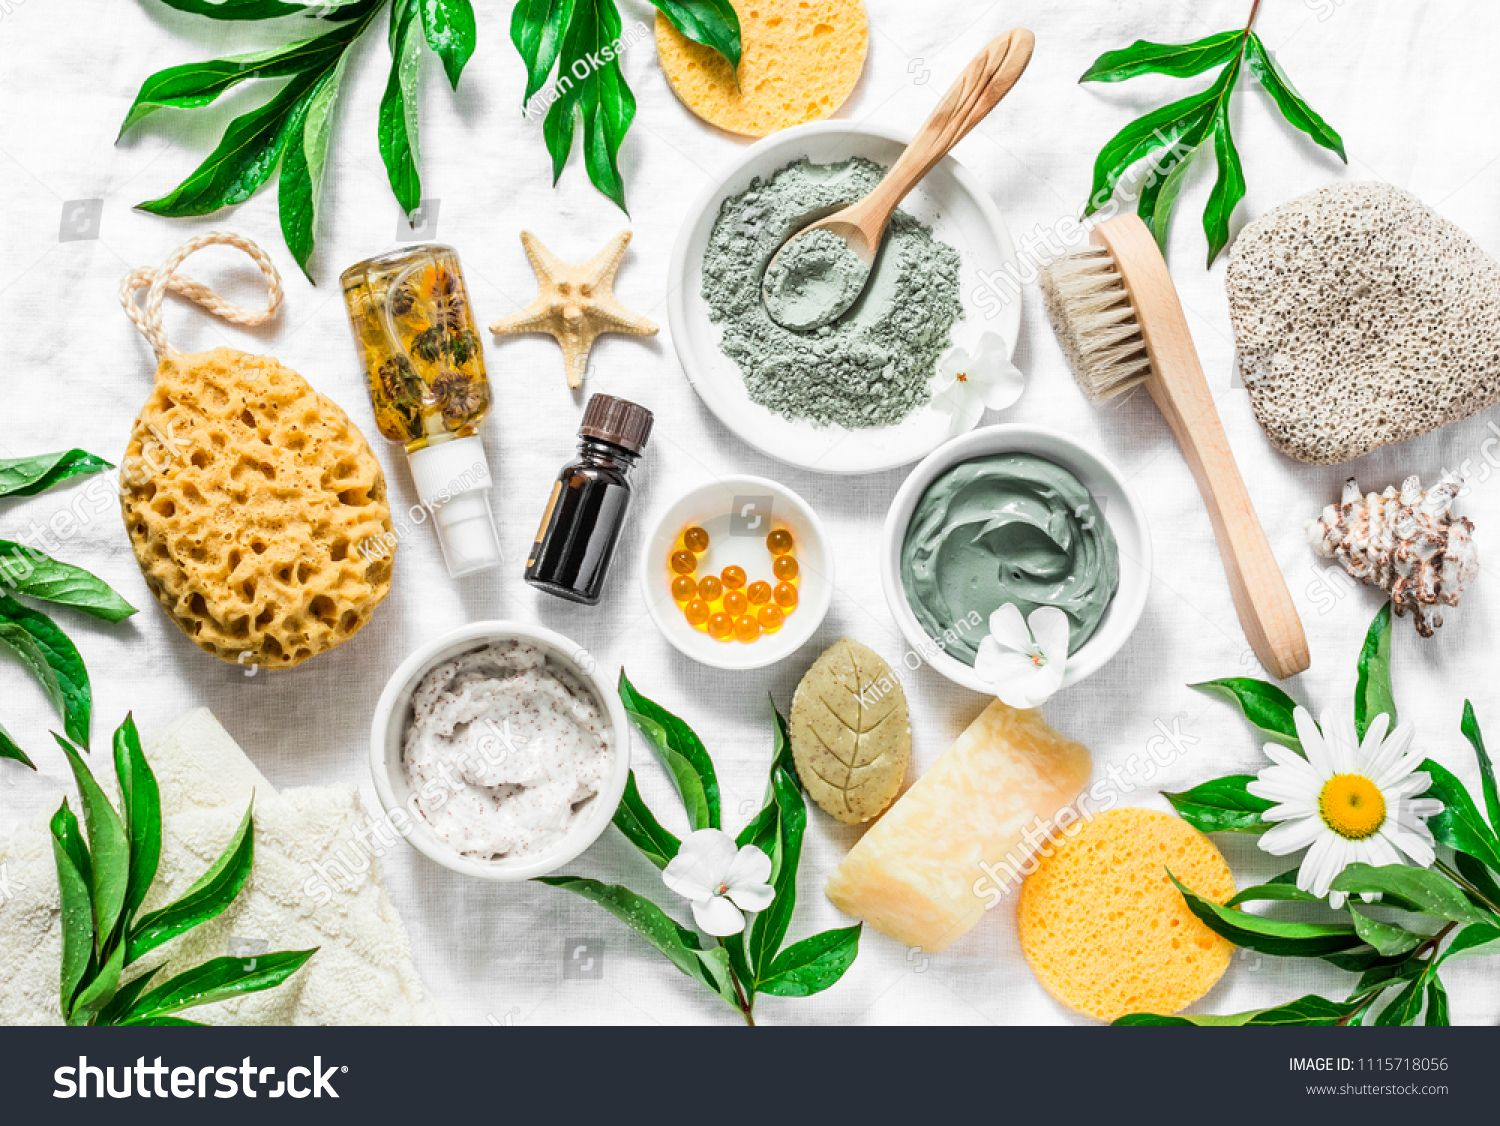 Flat Lay Beauty Skin Care Ingredients Accessories Natural Beauty Products On A Light Background Top View S Skincare Ingredients Beauty Skin Care Beauty Skin